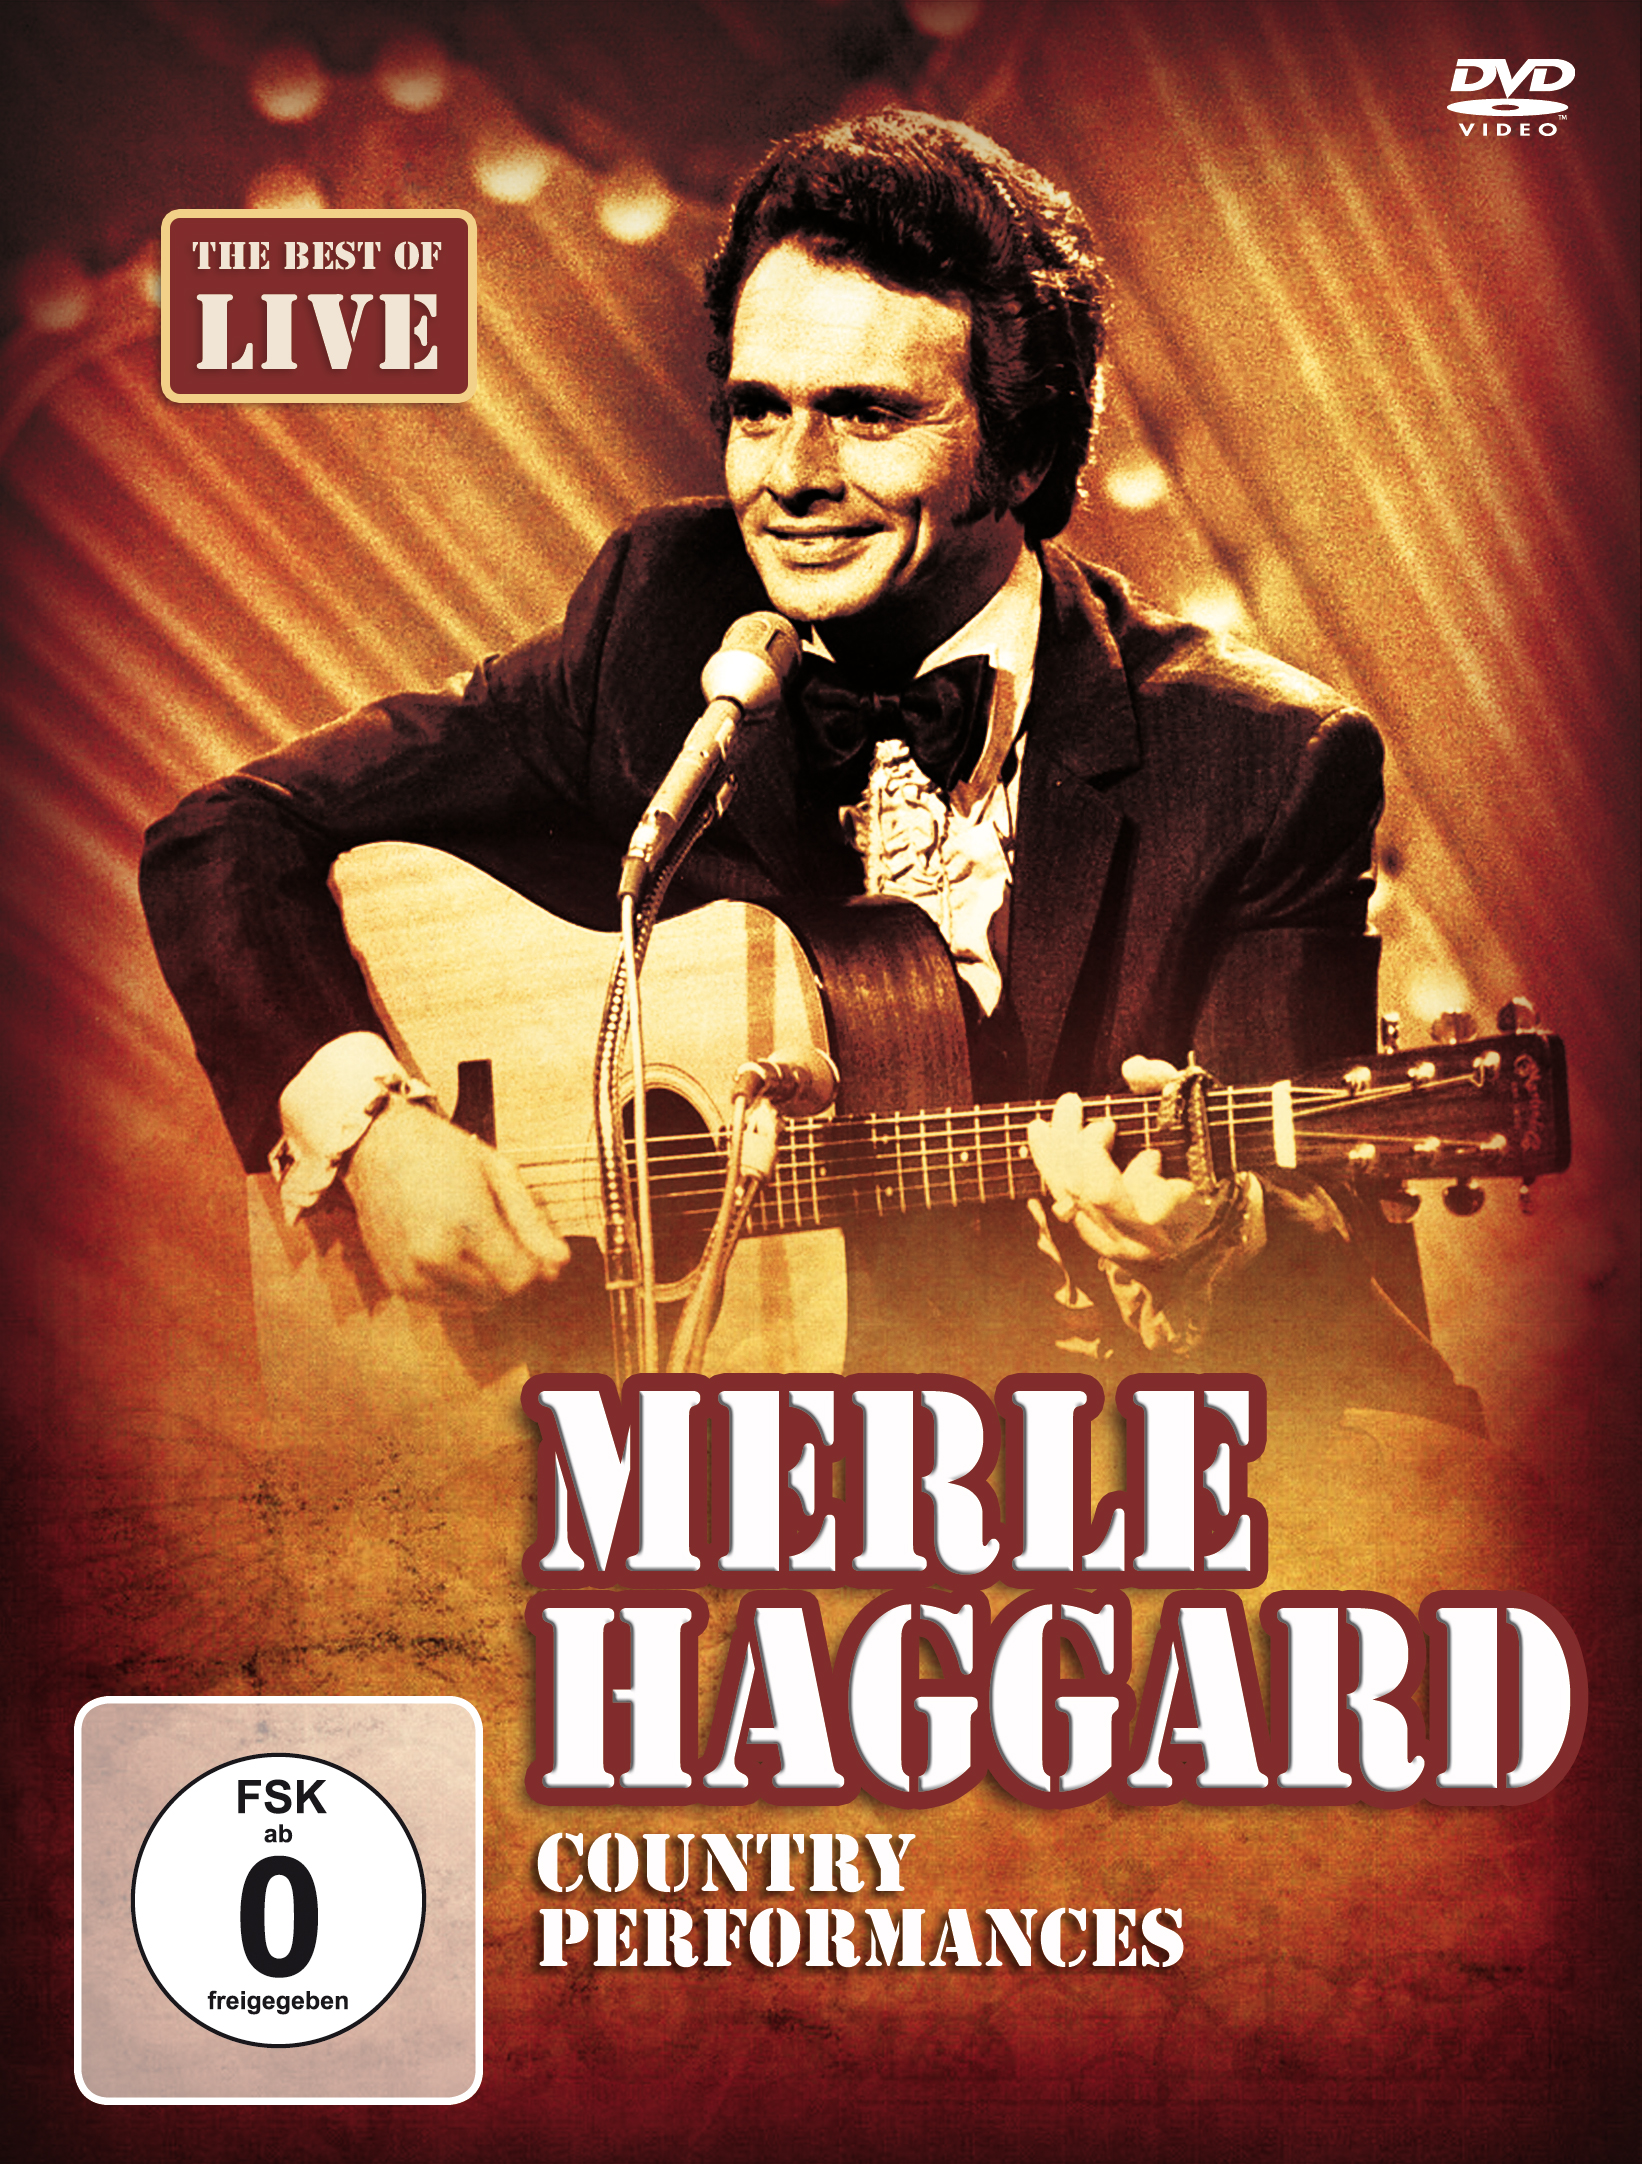 Merle Haggard: Country Perfomances